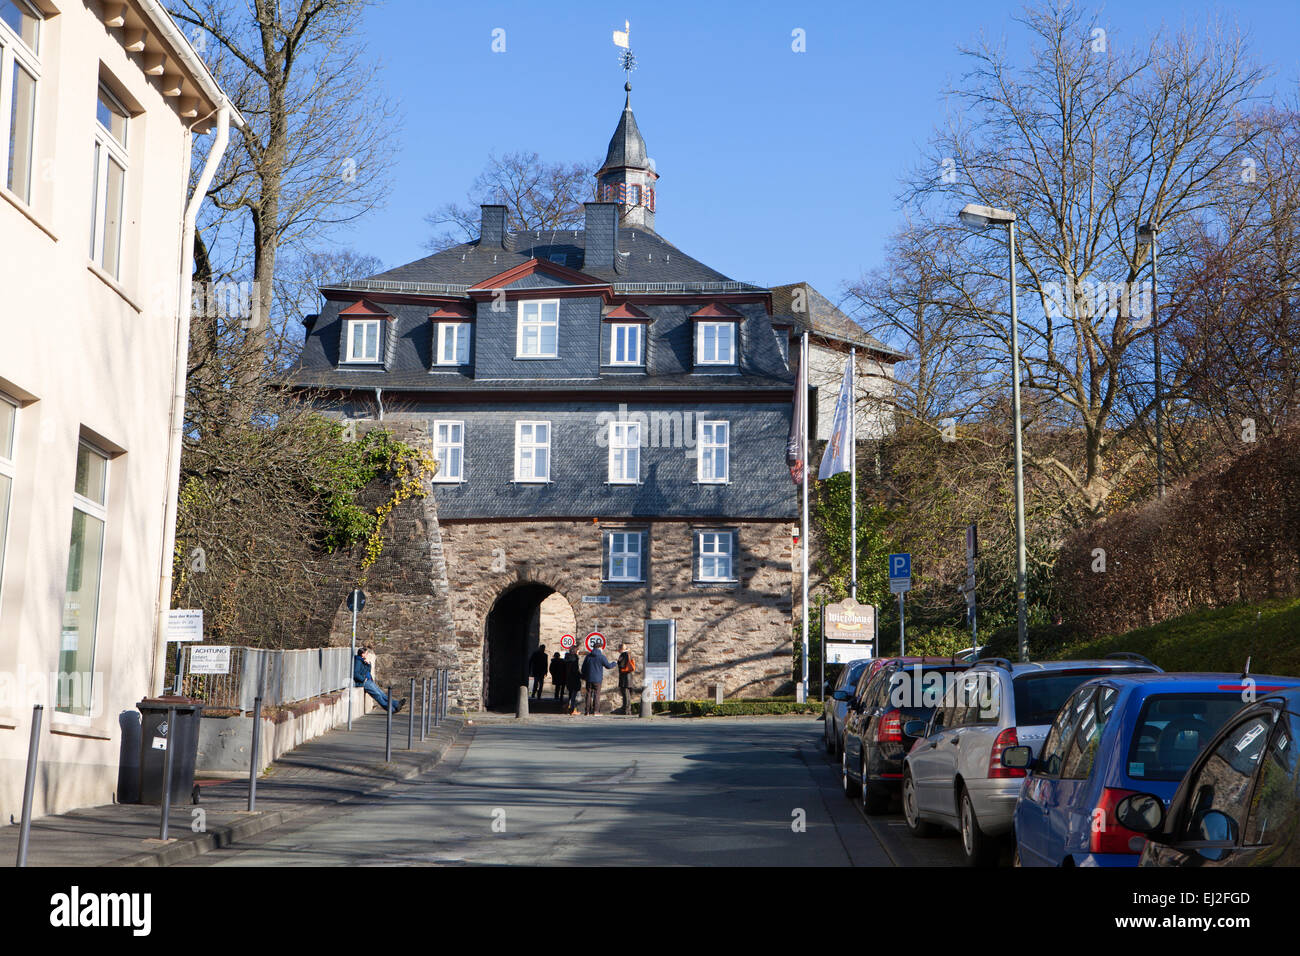 Castle buildings of the Oberes Schloss or Upper Castle, Siegen, North Rhine-Westphalia, Germany, Europe, Stock Photo